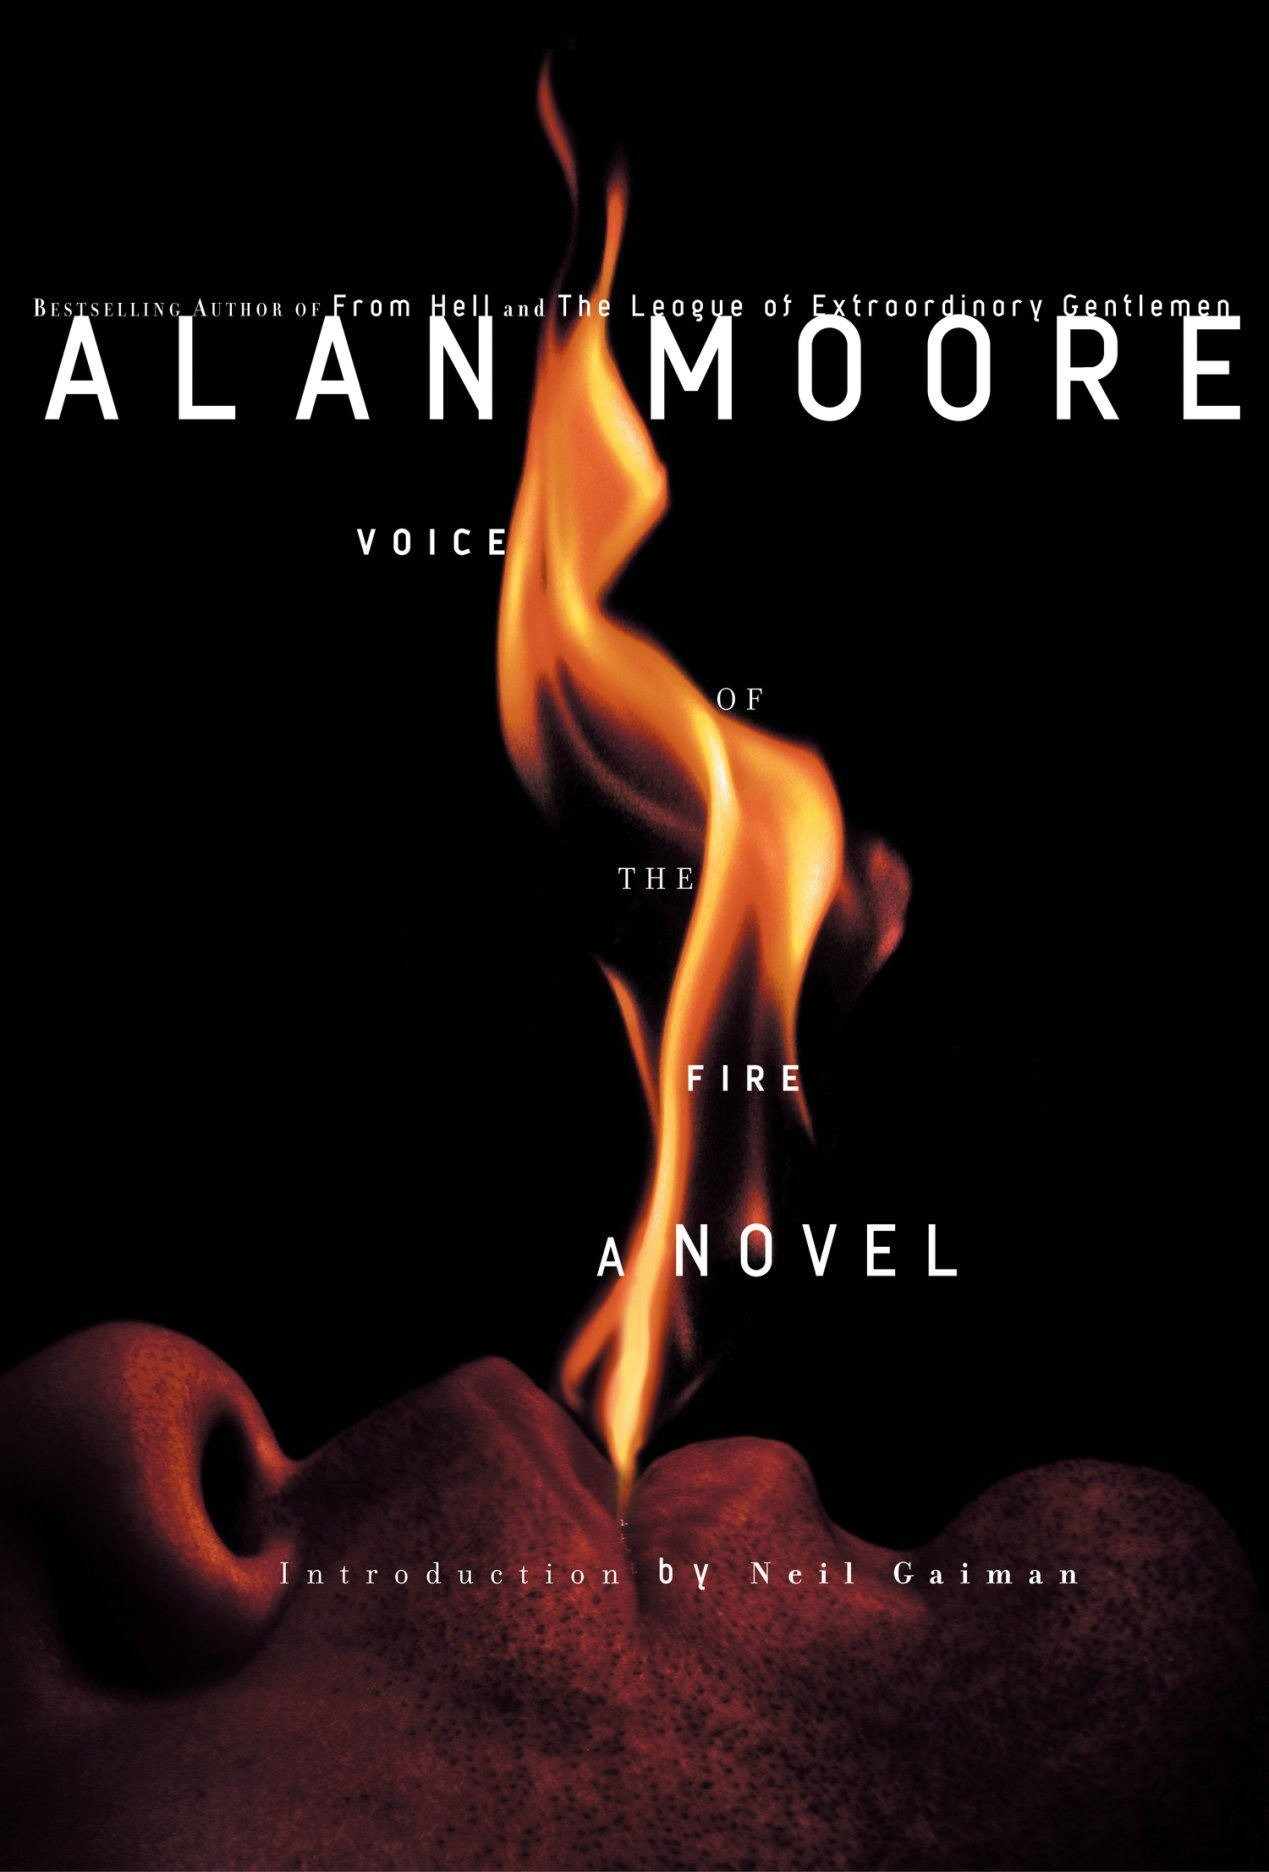 Image result for voice of the fire alan moore